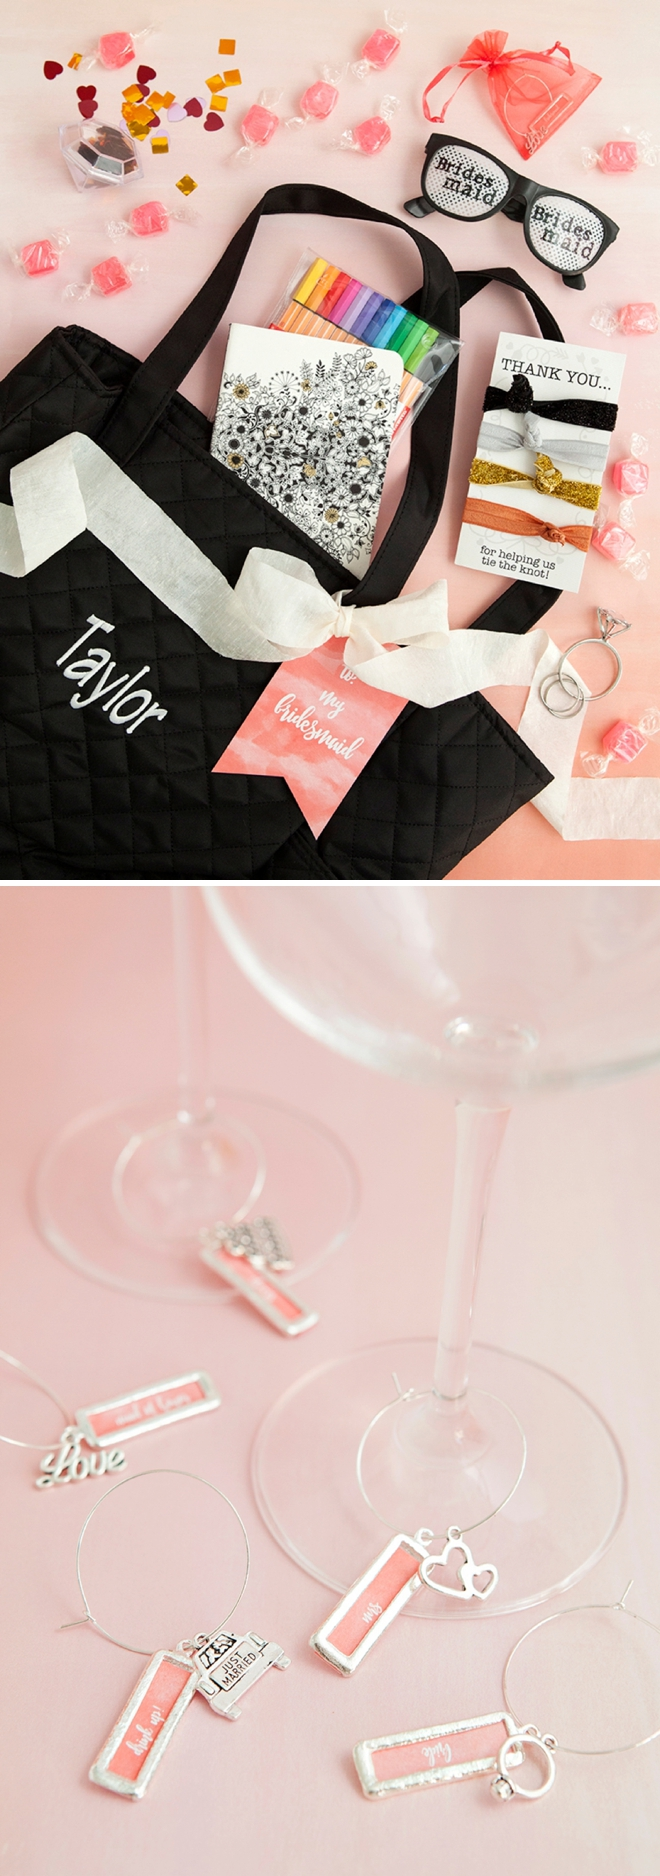 Adorable DIY bridesmaid gift bags with DIY wine charms!